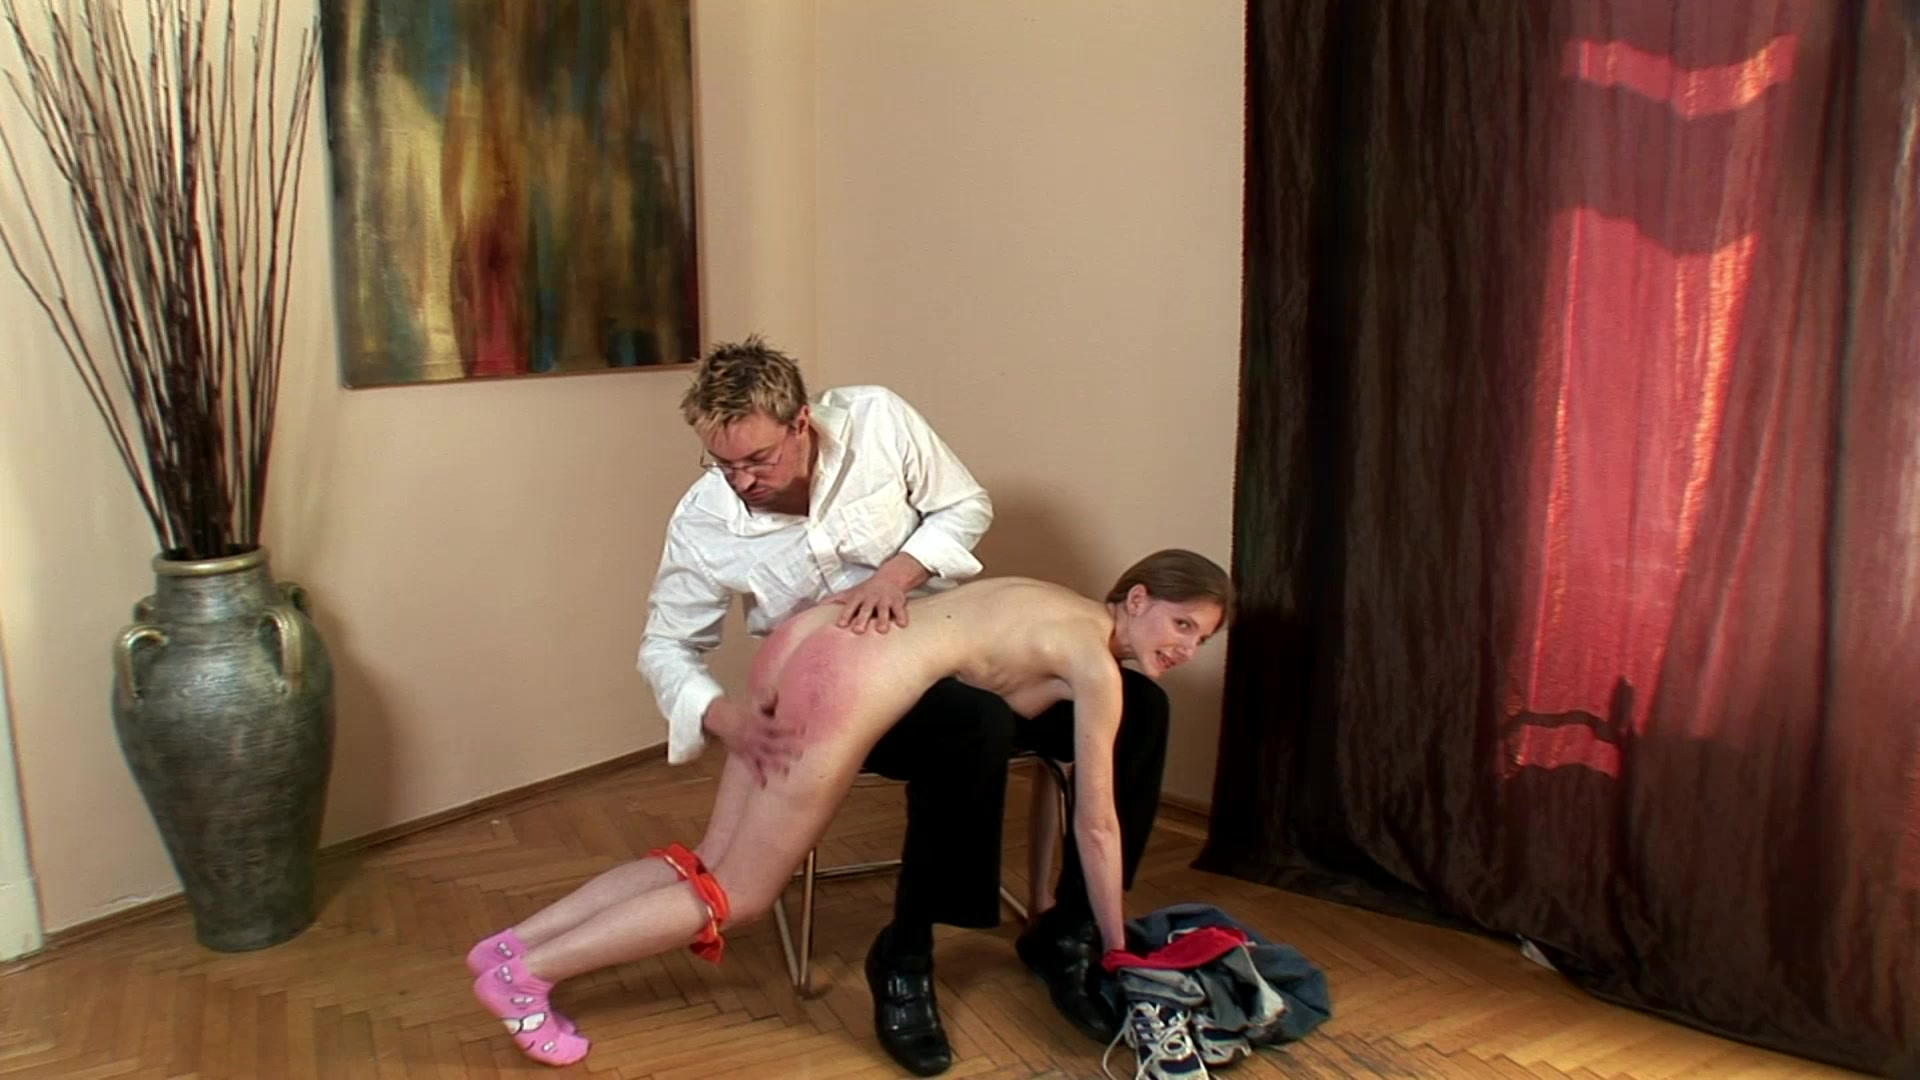 Mature Guy Getting Spanked